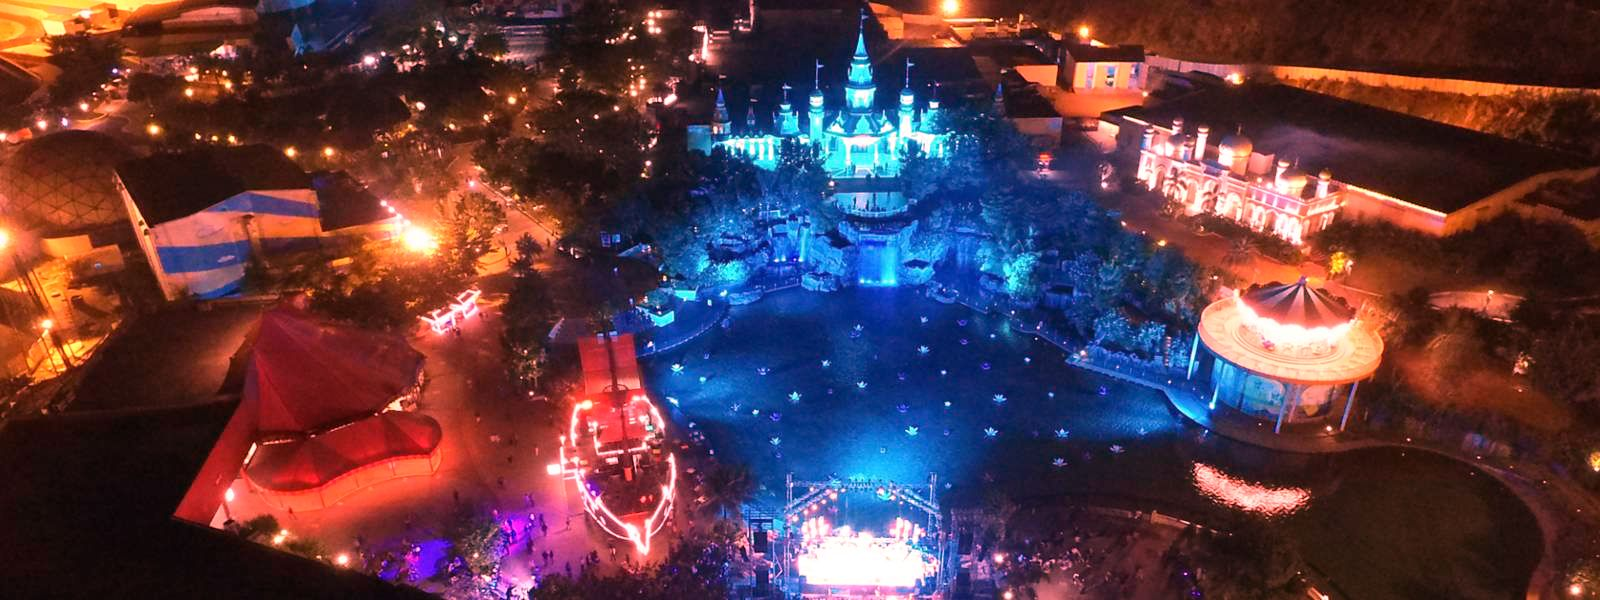 New Year Party At Adlabs Imagica